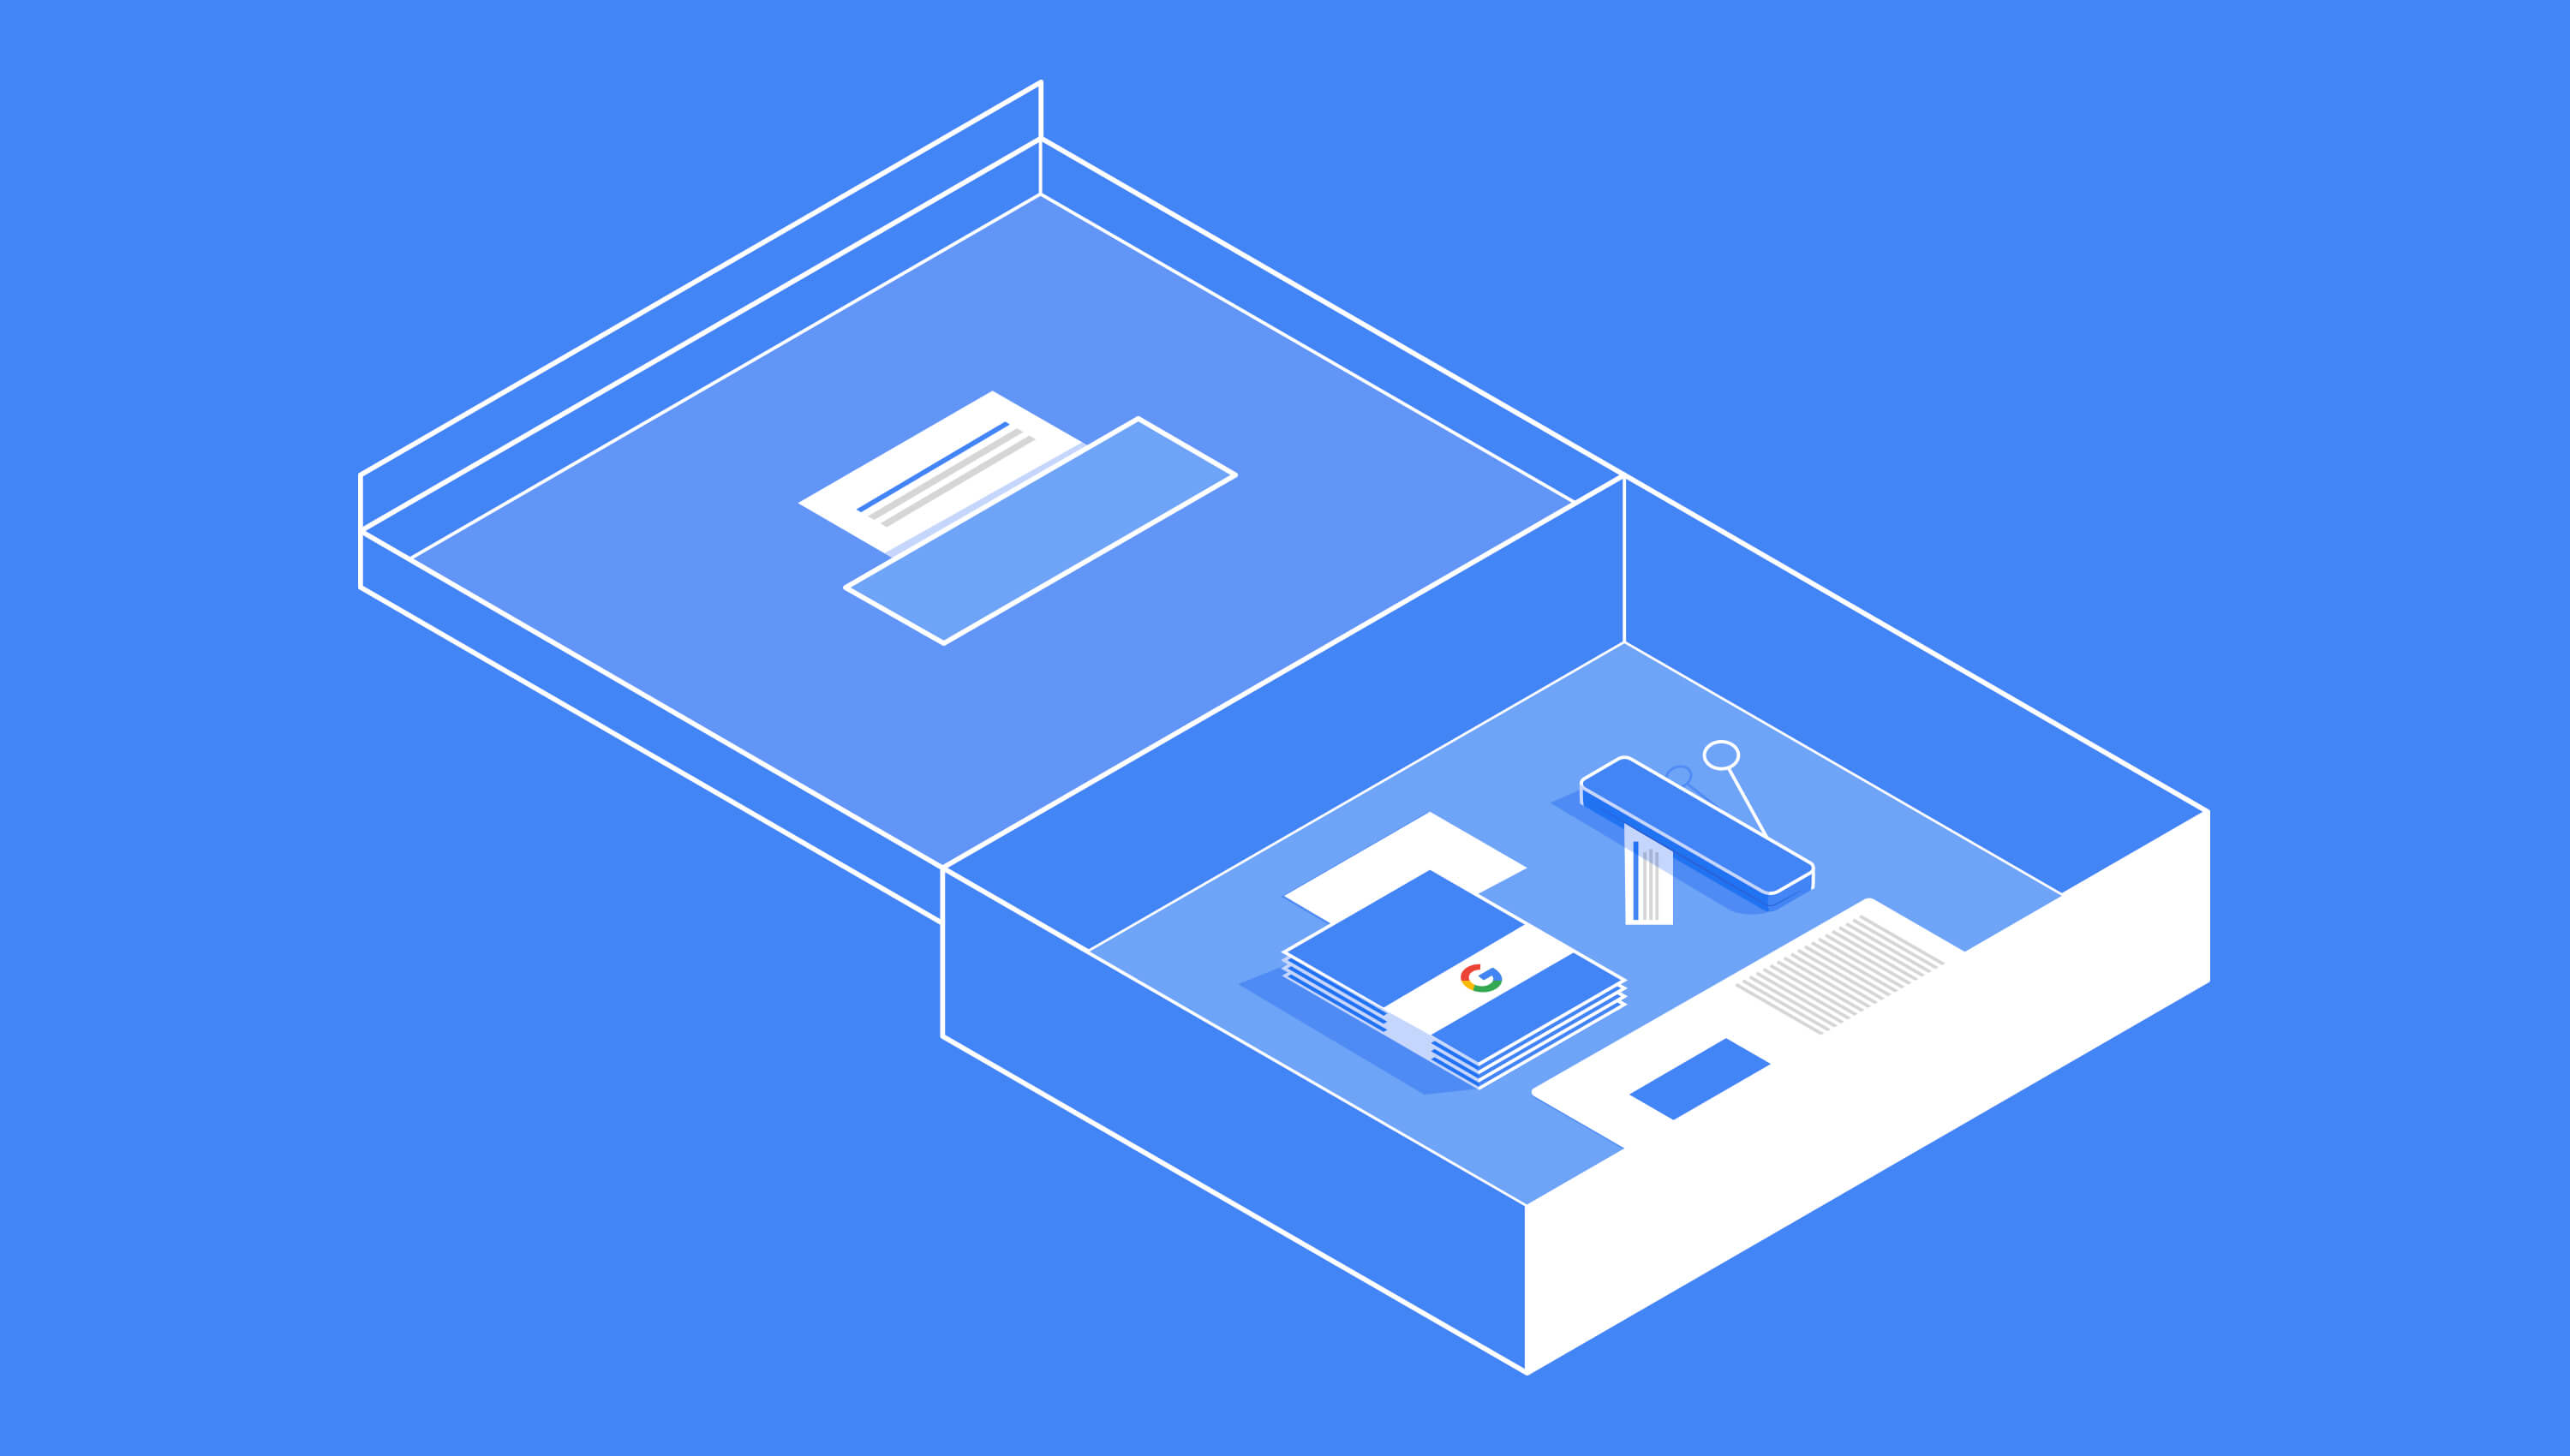 Google illustration for box concept one